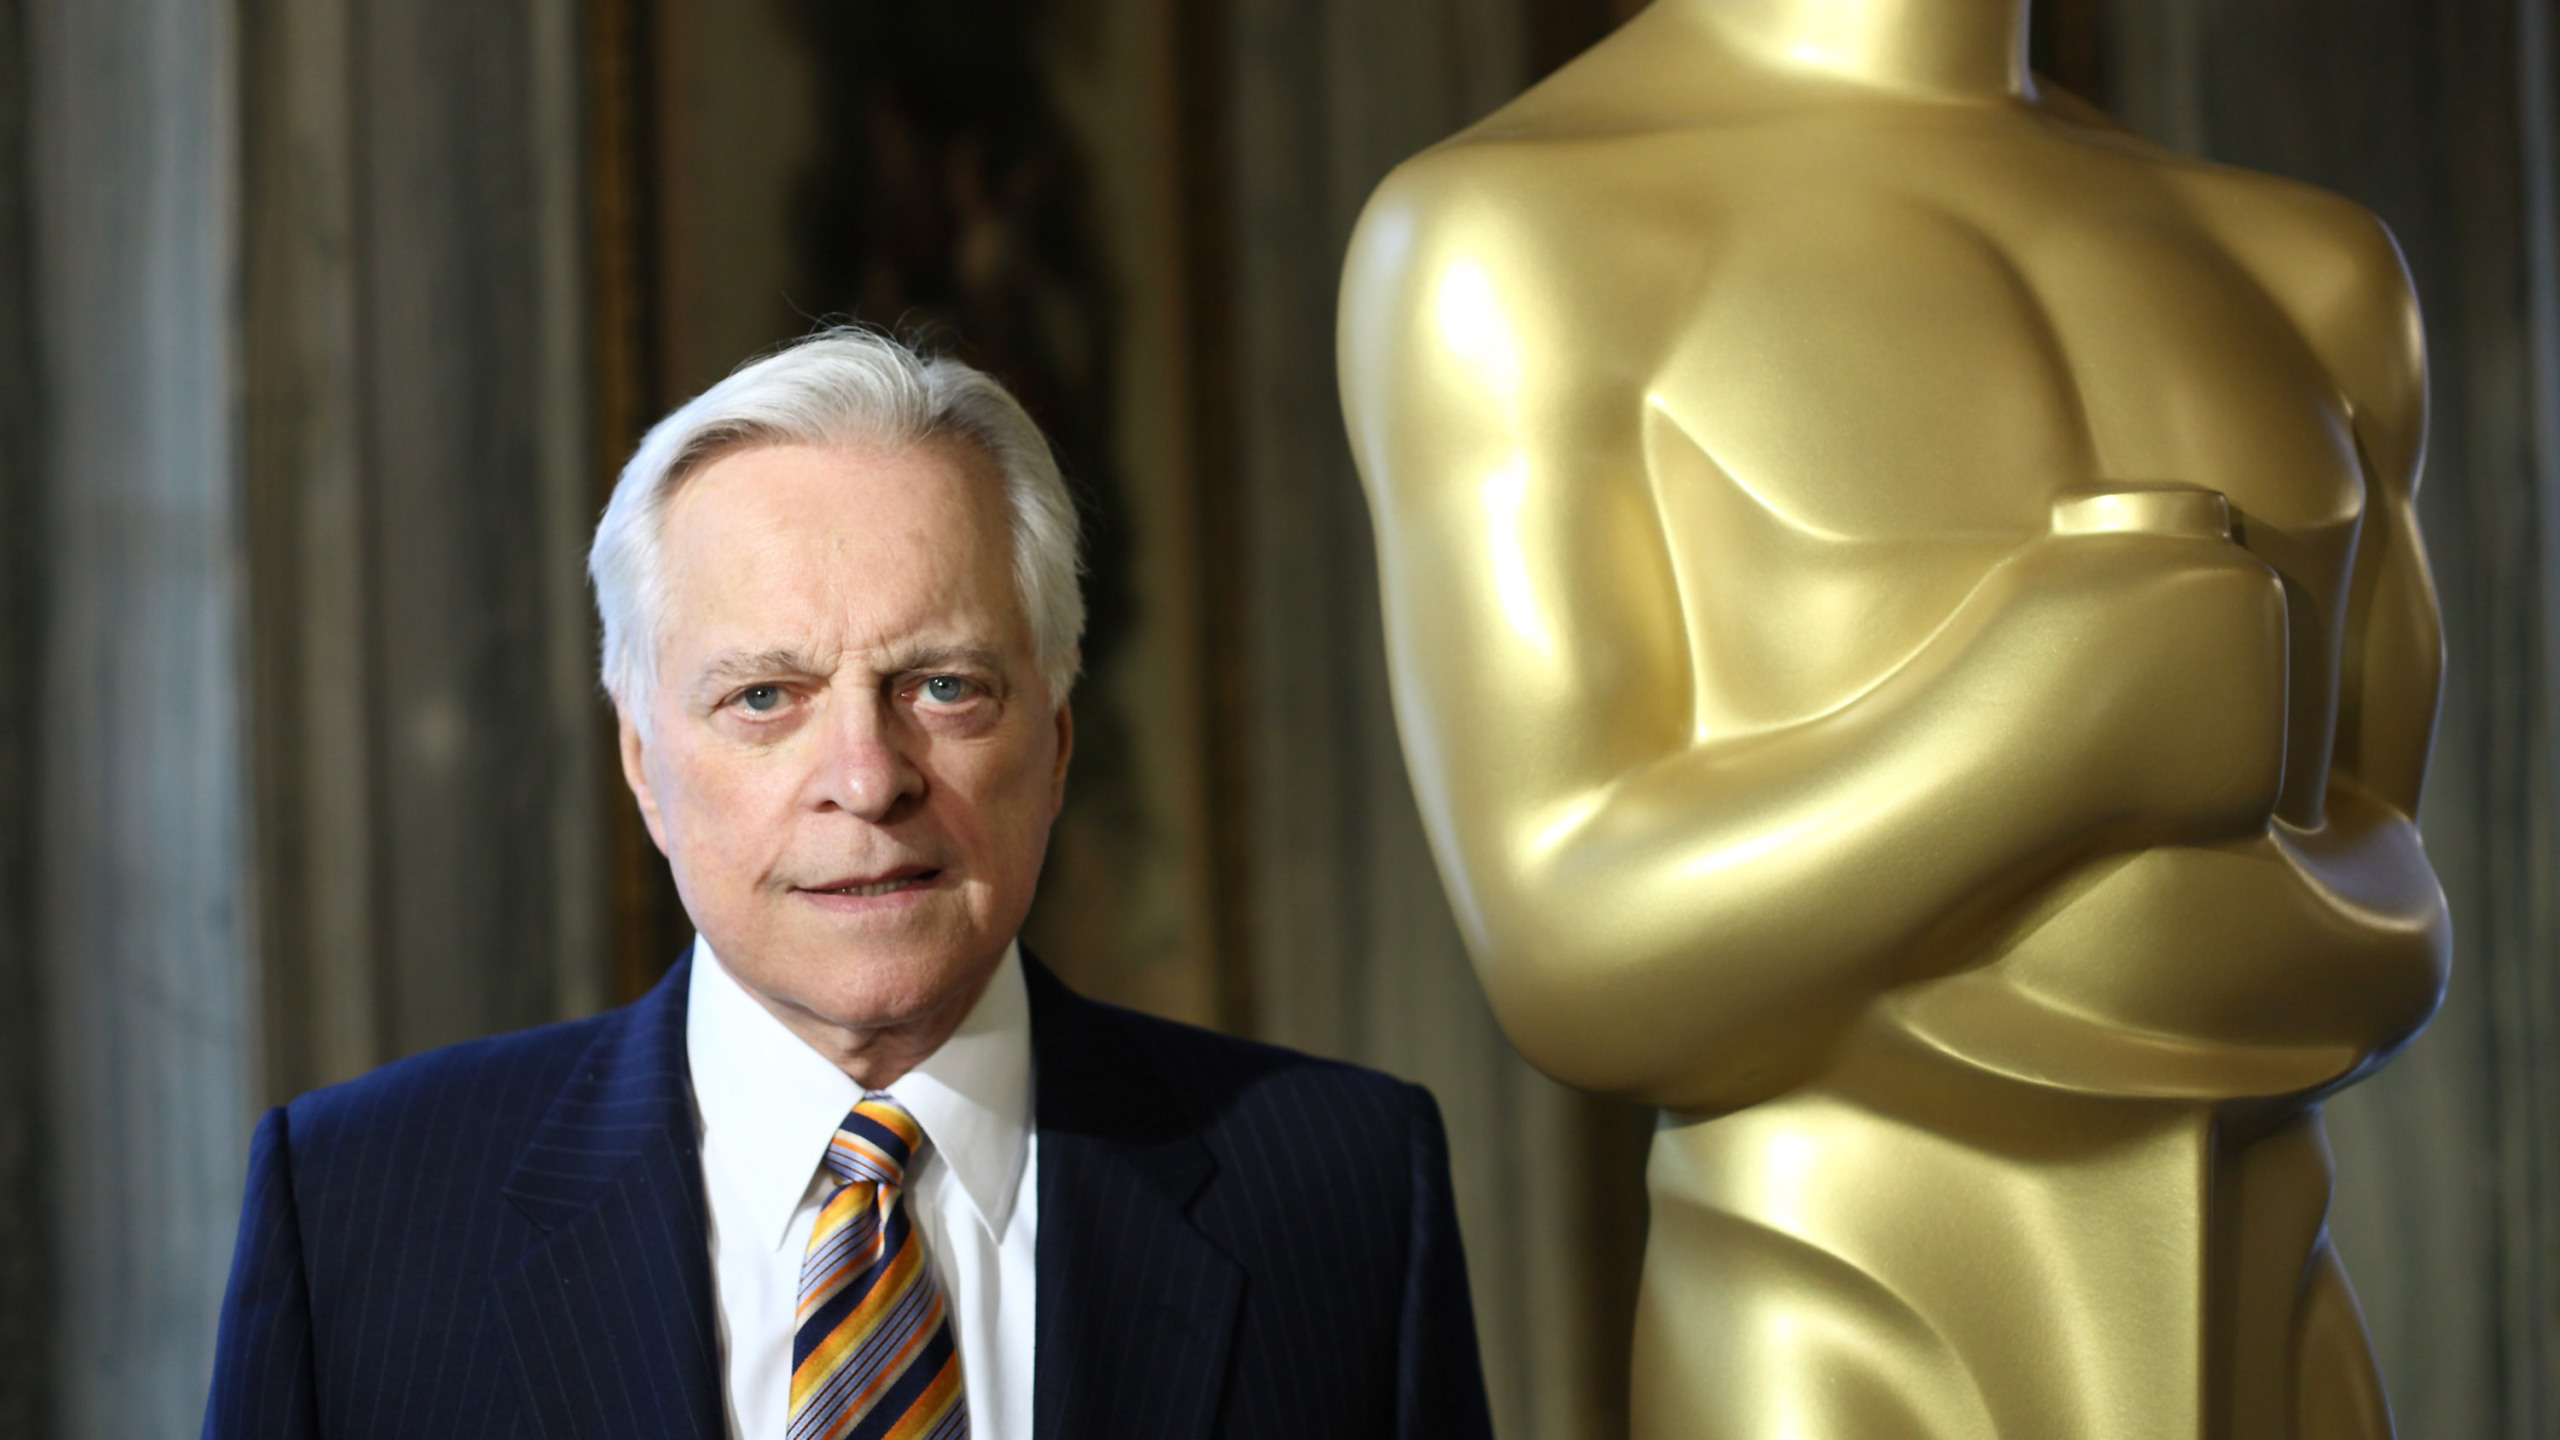 Official biographer of the Academy Awards Robert Osborne attends the Oscar Party Preview at GILT at The New York Palace Hotel on February 18, 2010 in New York City. (Credit: Neilson Barnard/Getty Images)